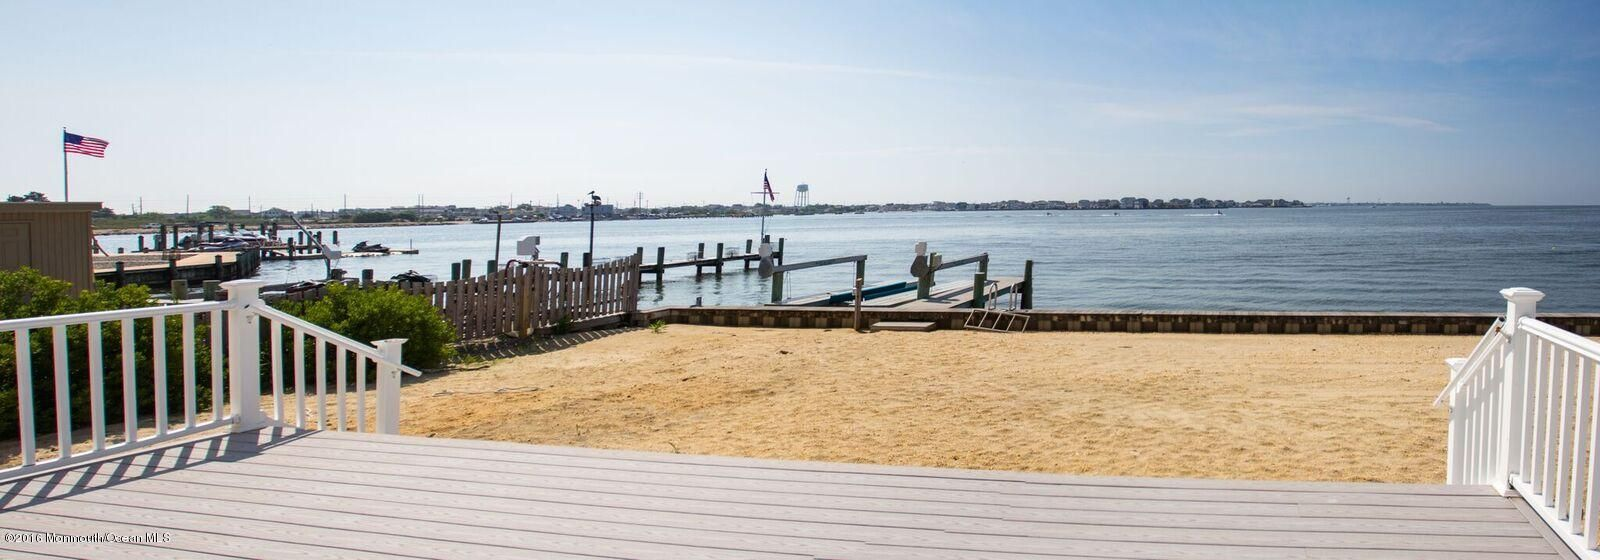 Additional photo for property listing at 421 Sunset Drive  Seaside Heights, 新泽西州 08751 美国